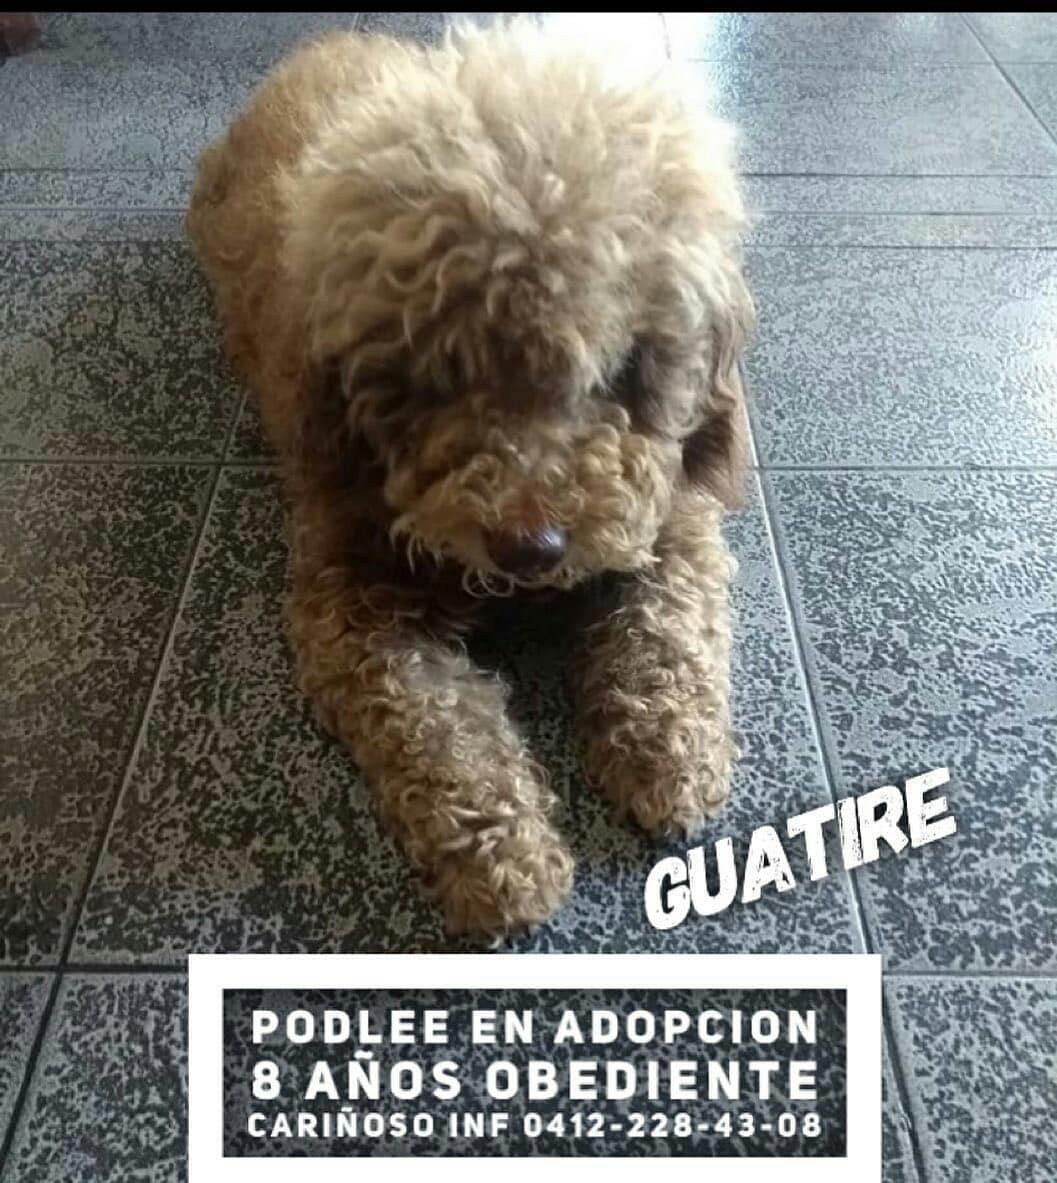 Sharing from Reposta Difundir...Caracas...este angelito necesita un hogar Reposted from @perritosdelacallev <br>http://pic.twitter.com/efczsyNv1Q